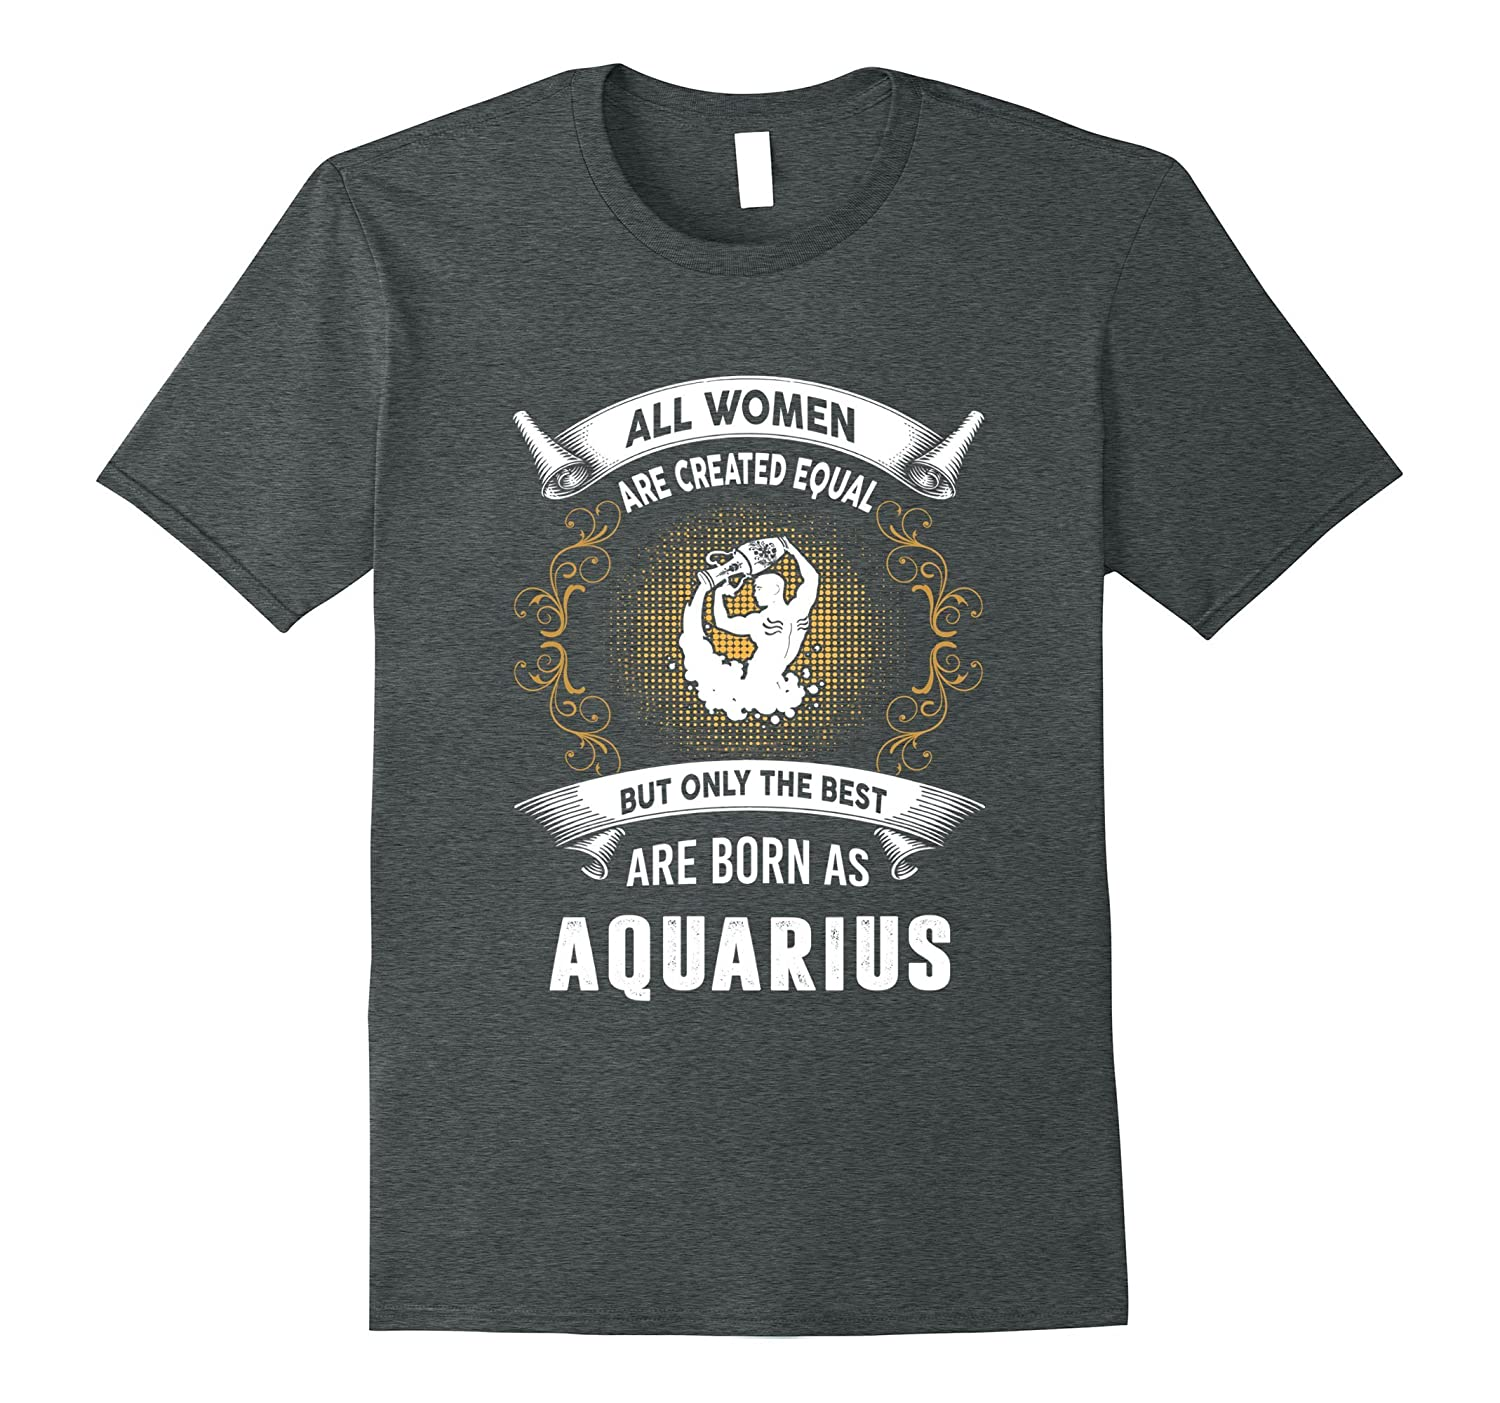 All women are created equal but the best are born Aquarius